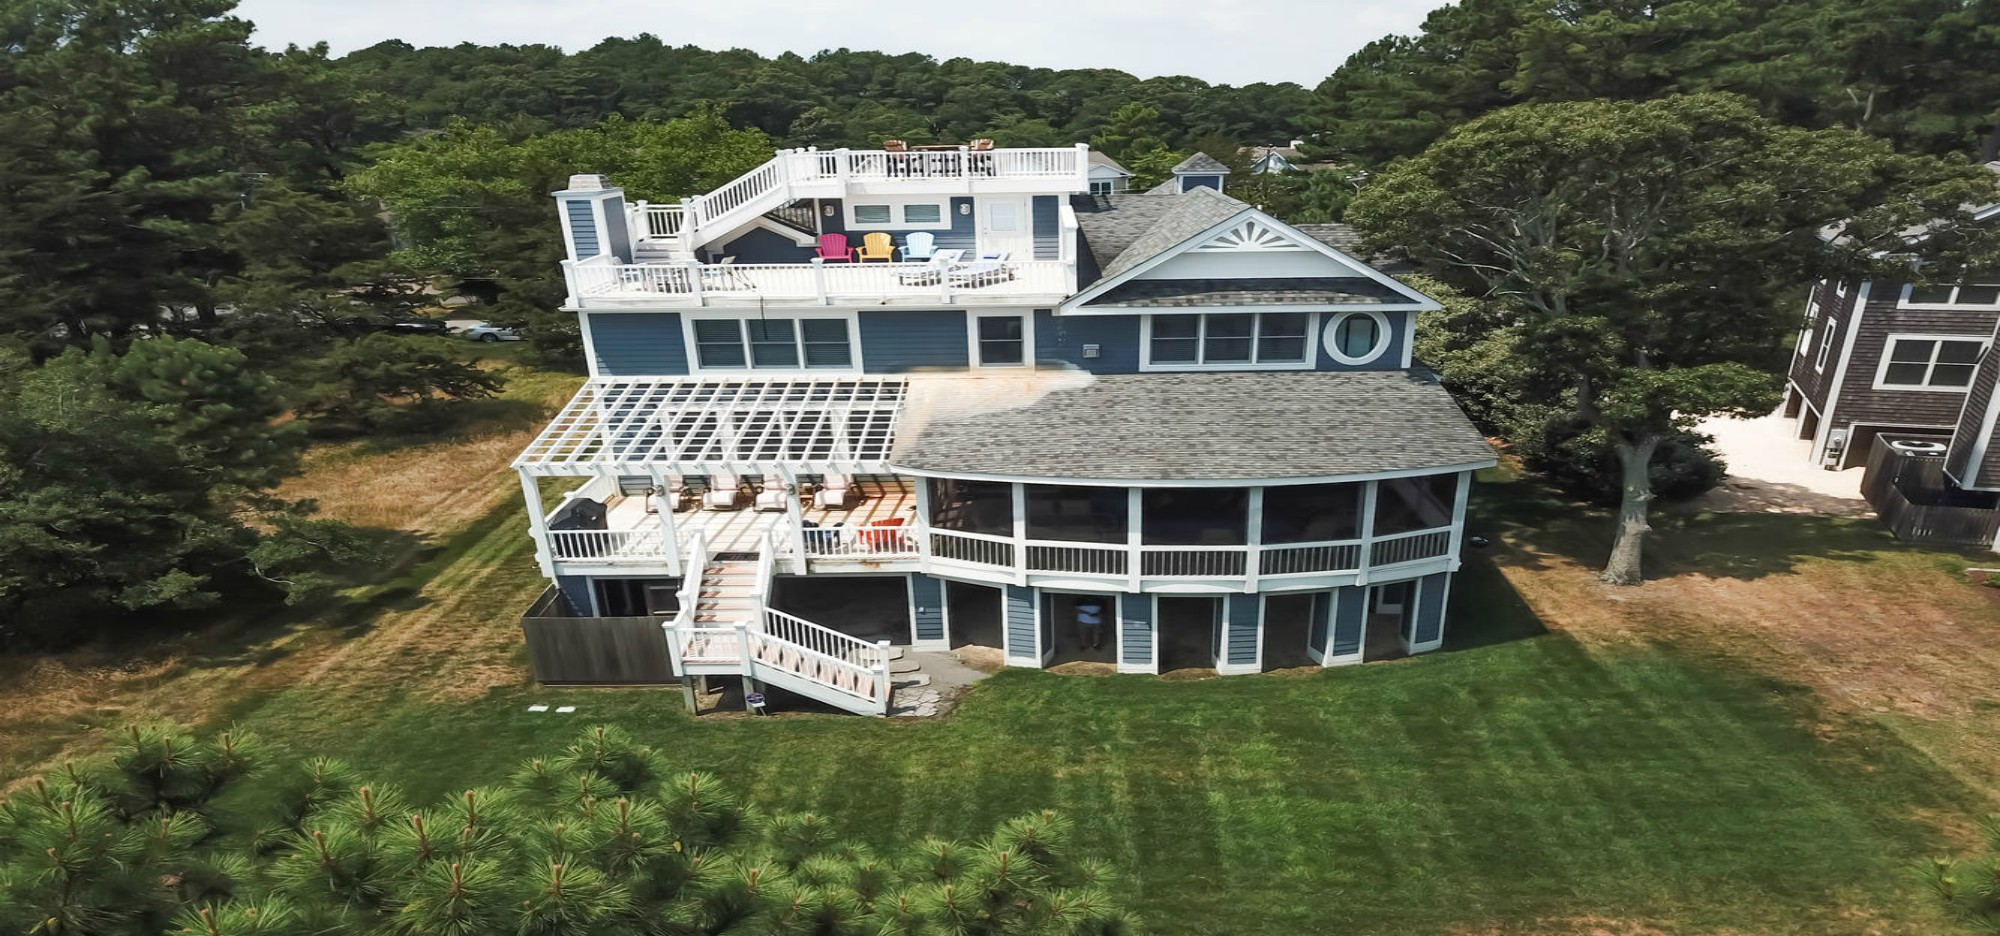 29 Holly Road, Rehoboth Beach : $3,199,000